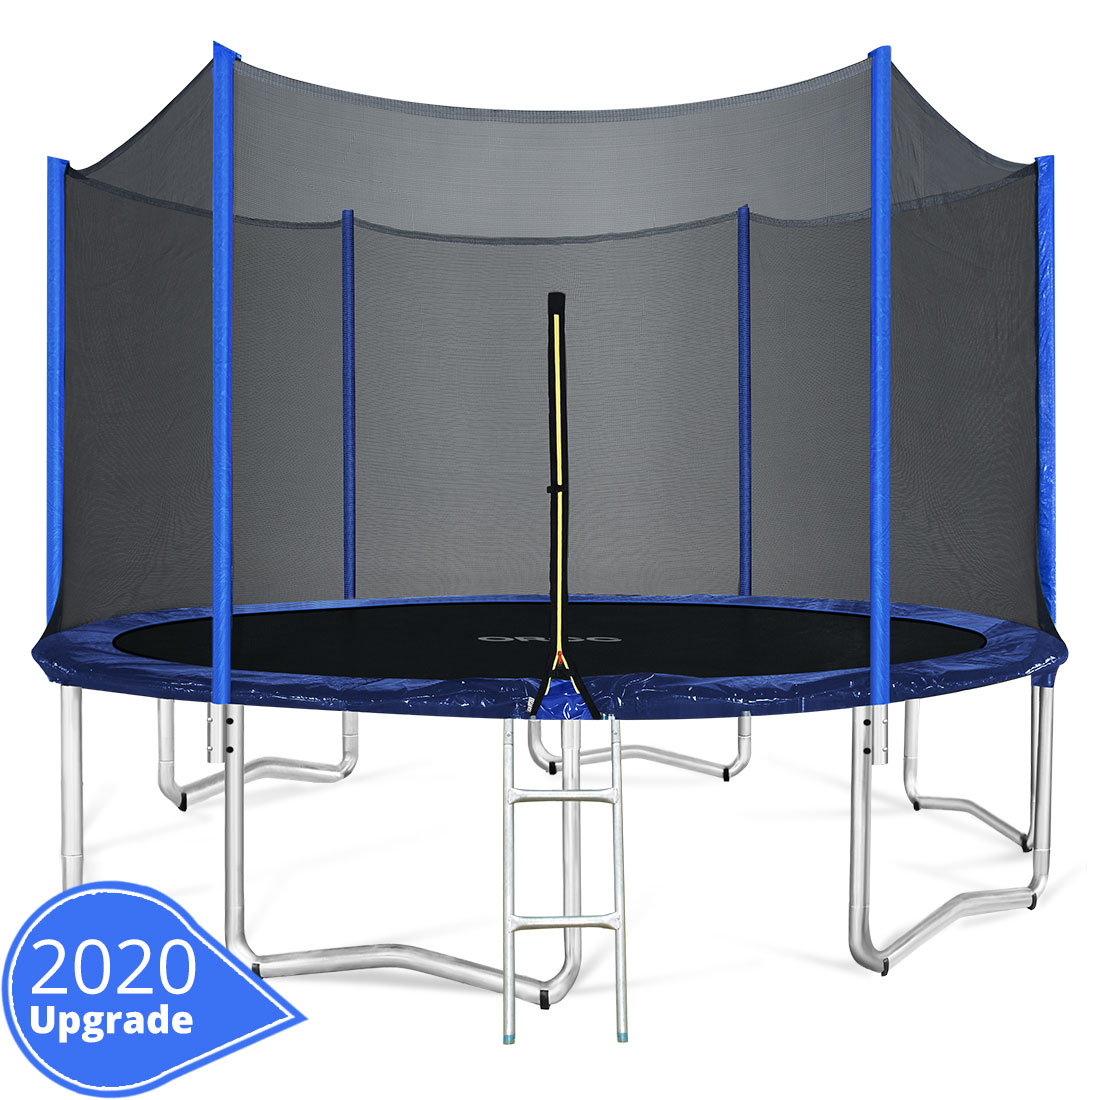 ORCC 2020 Upgrade 15FT Trampoline With Enclosure Net Pad